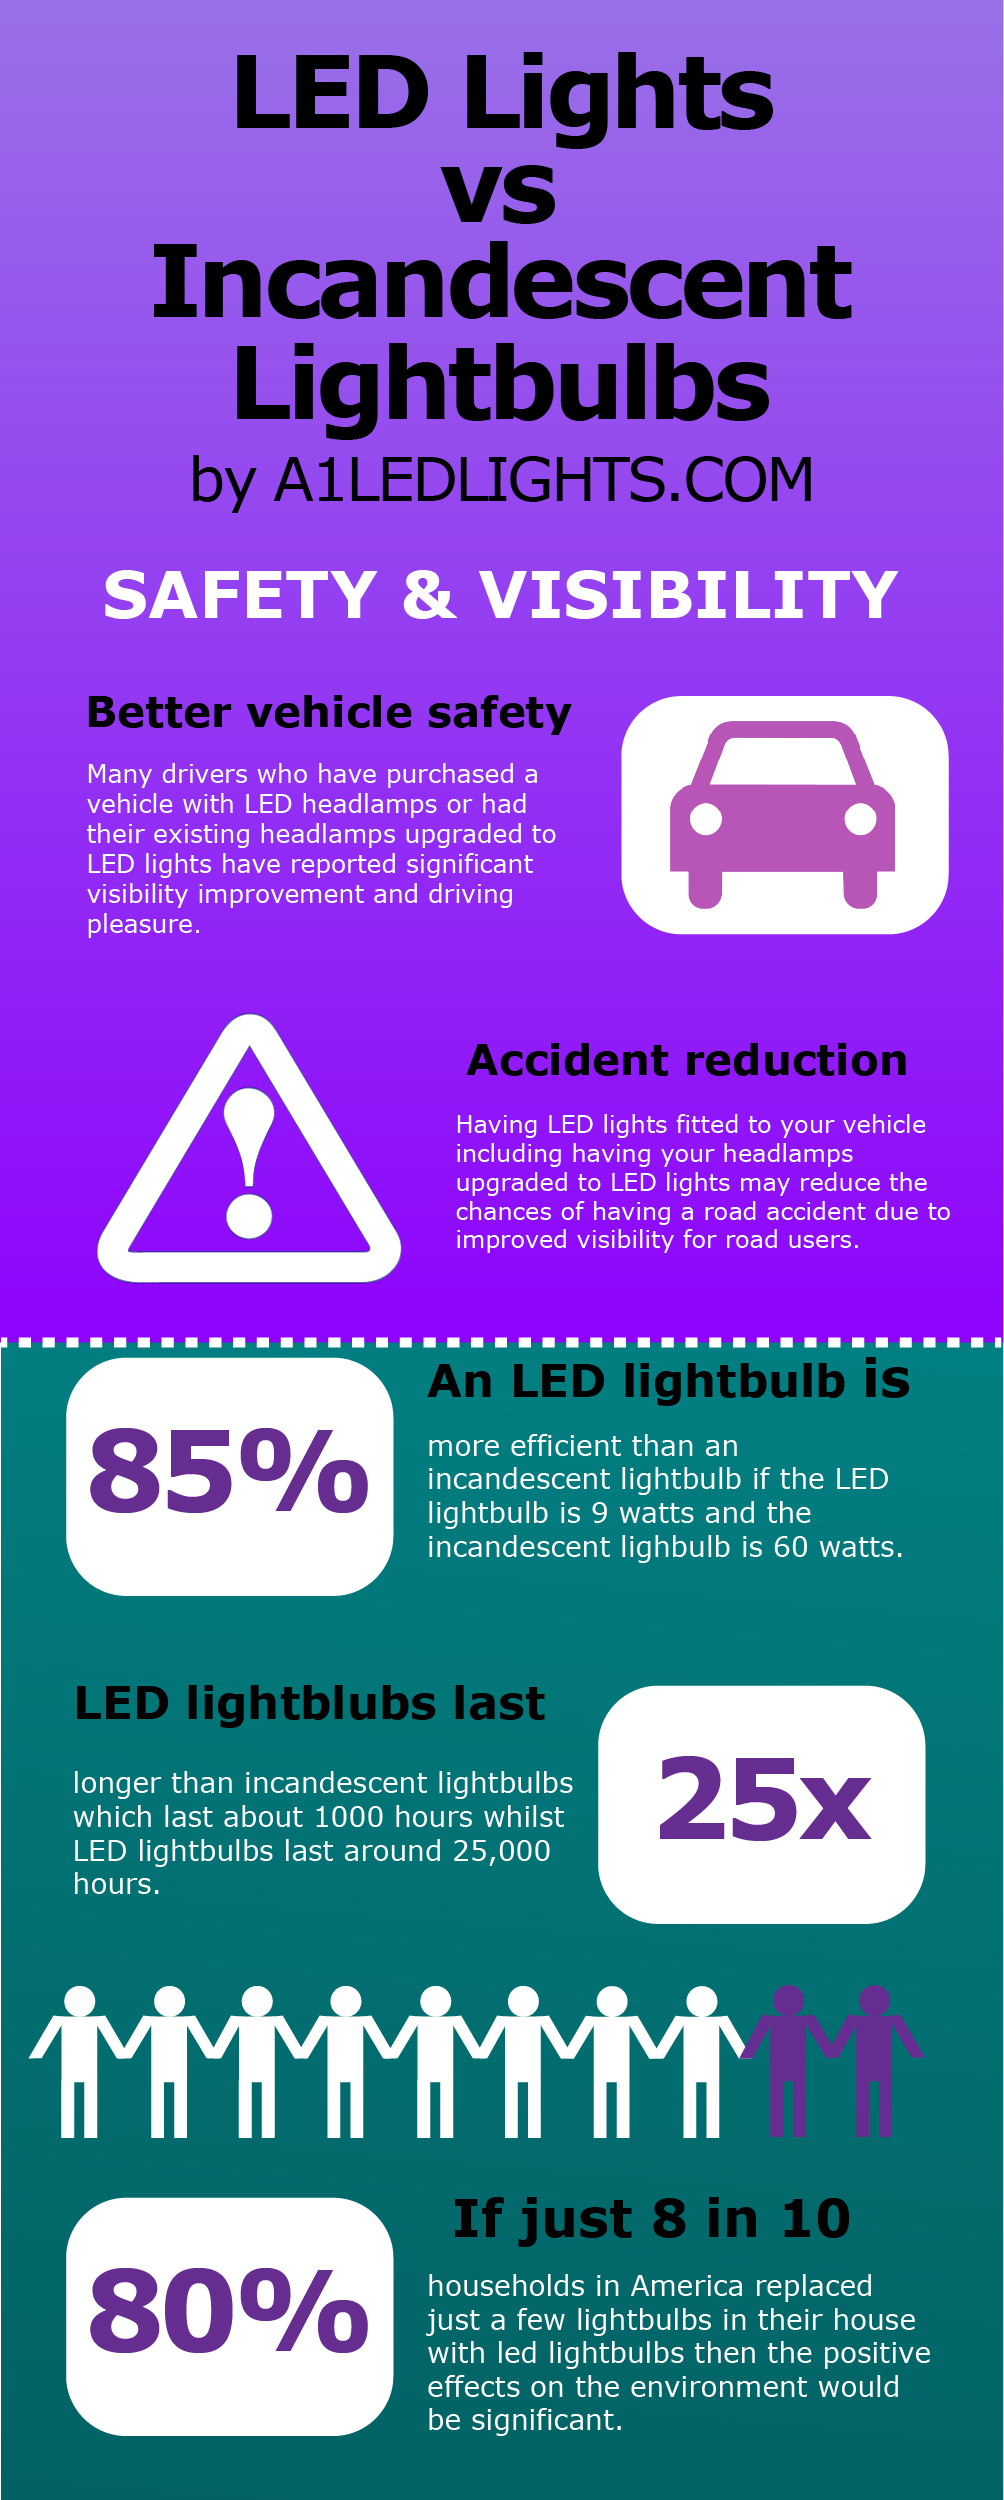 led-lights-vs-incandescent-lightbulbs-by-a1ledlights